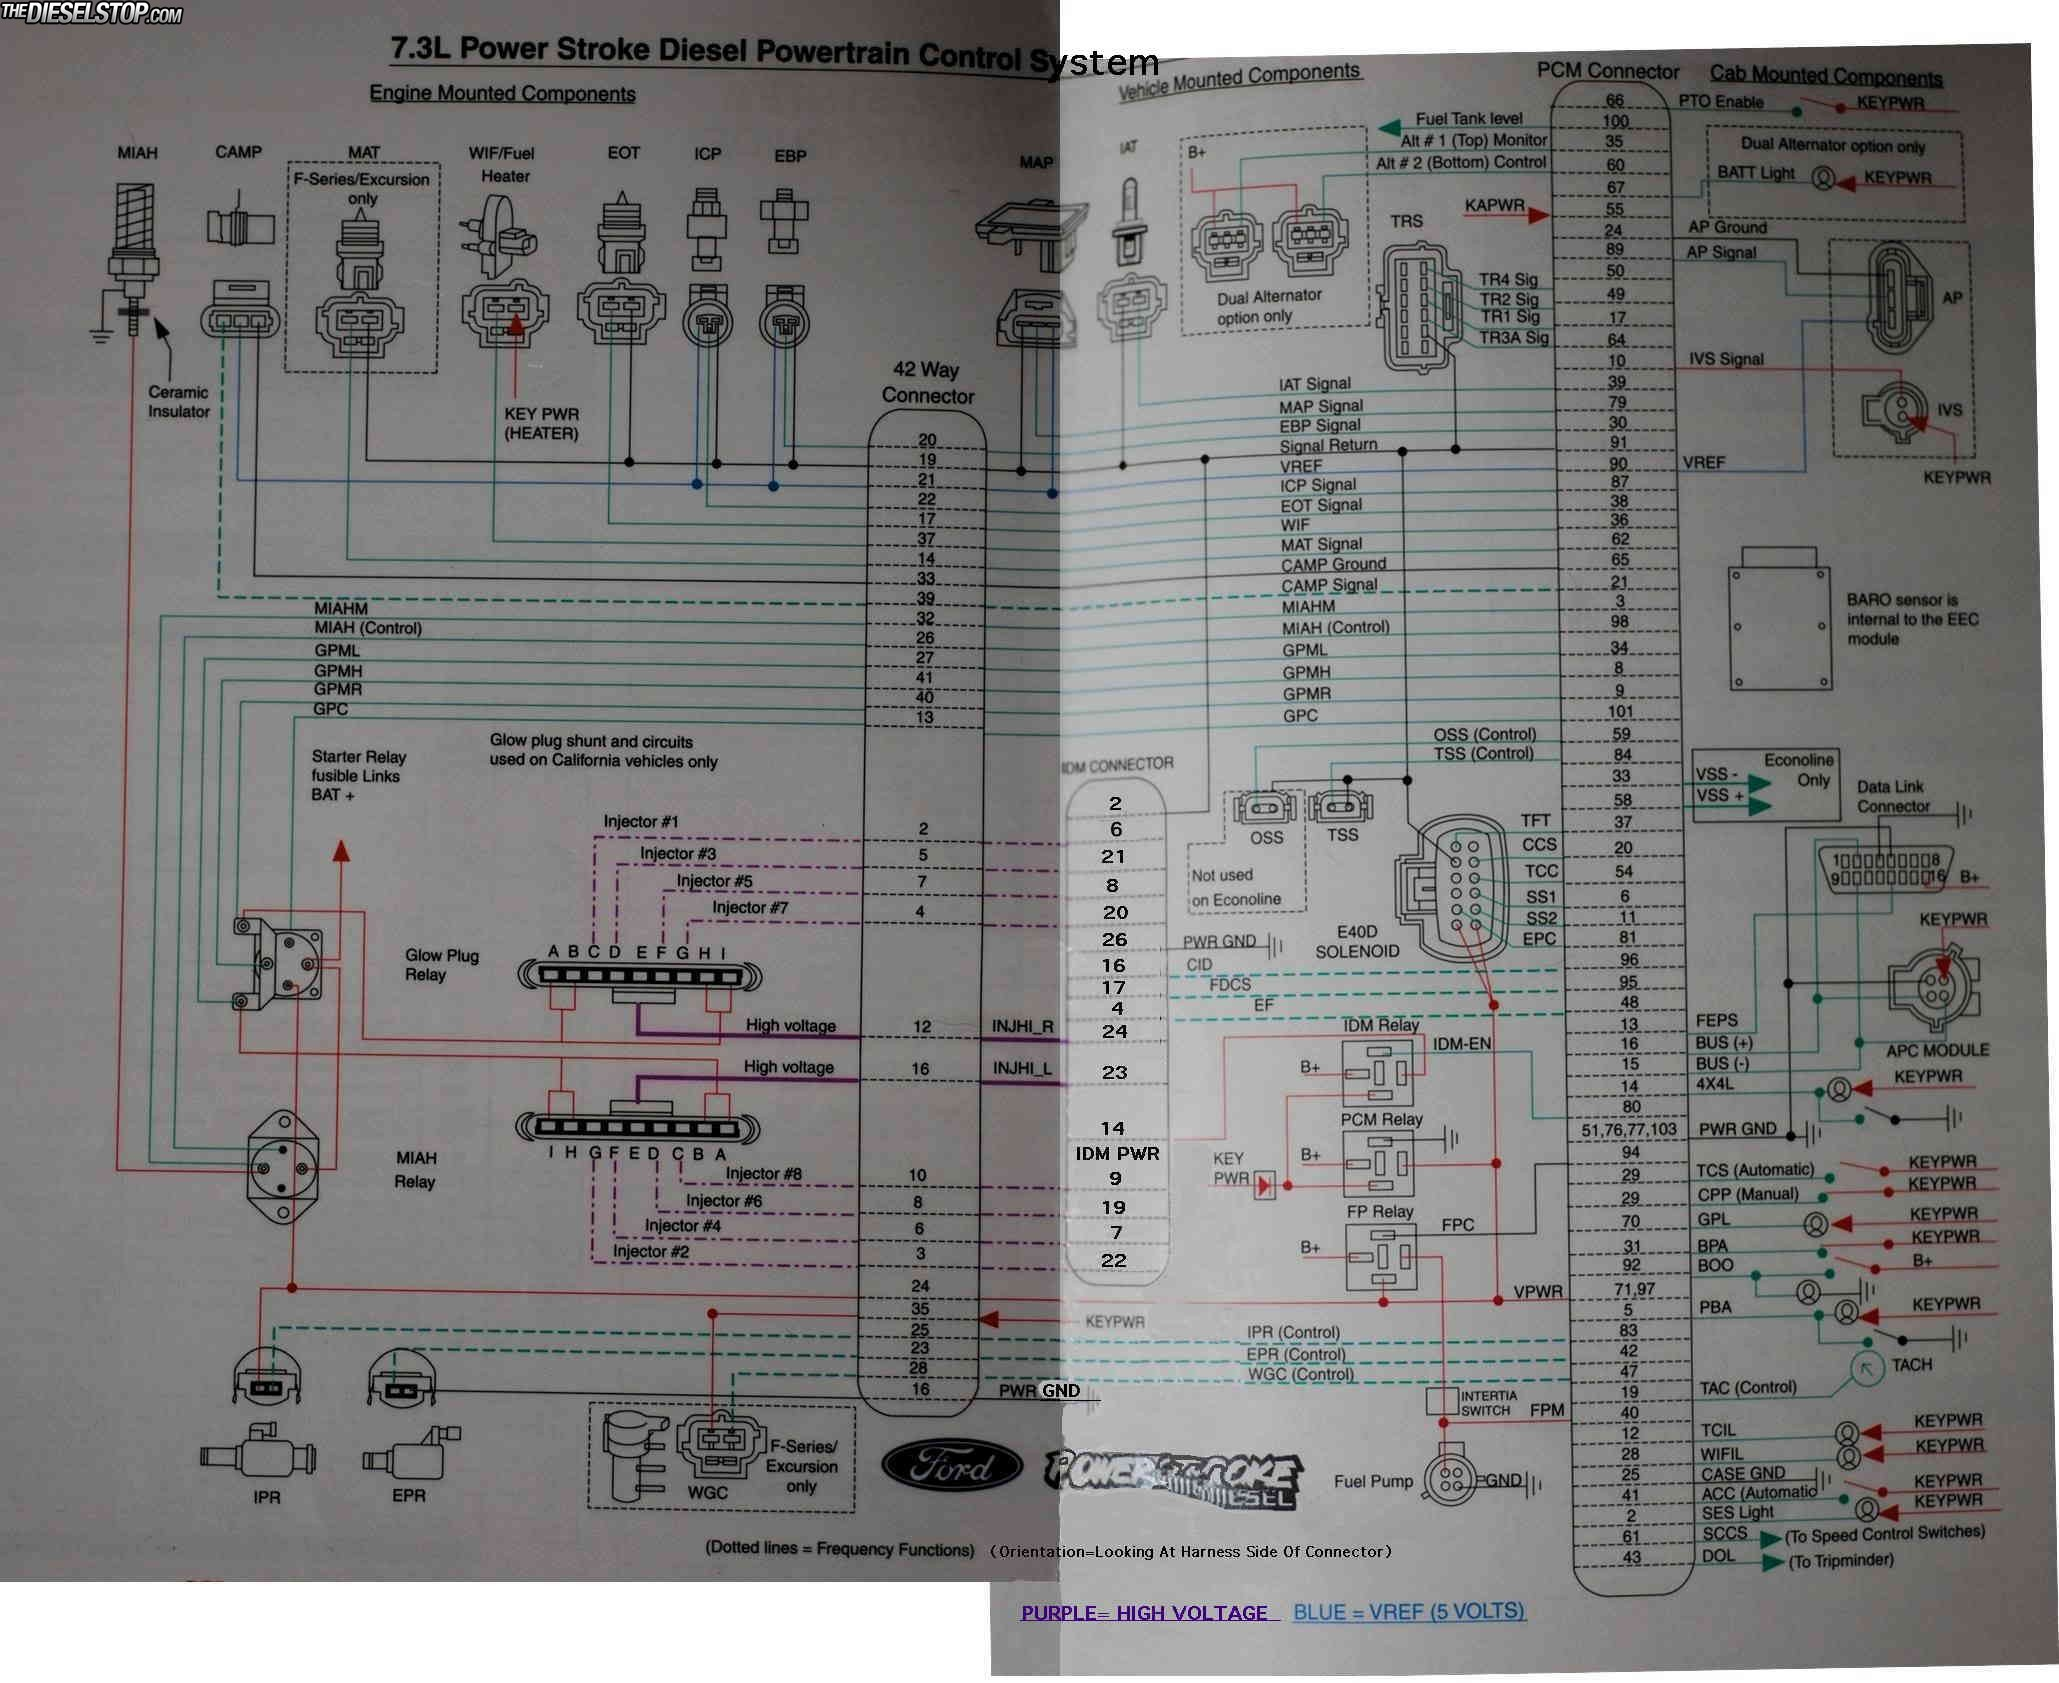 1996 ford F250 Tail Light Wiring Diagram 7 3l Wiring Schematic Printable Very Handy Diesel forum Of 1996 ford F250 Tail Light Wiring Diagram 7 3l Wiring Schematic Printable Very Handy Diesel forum